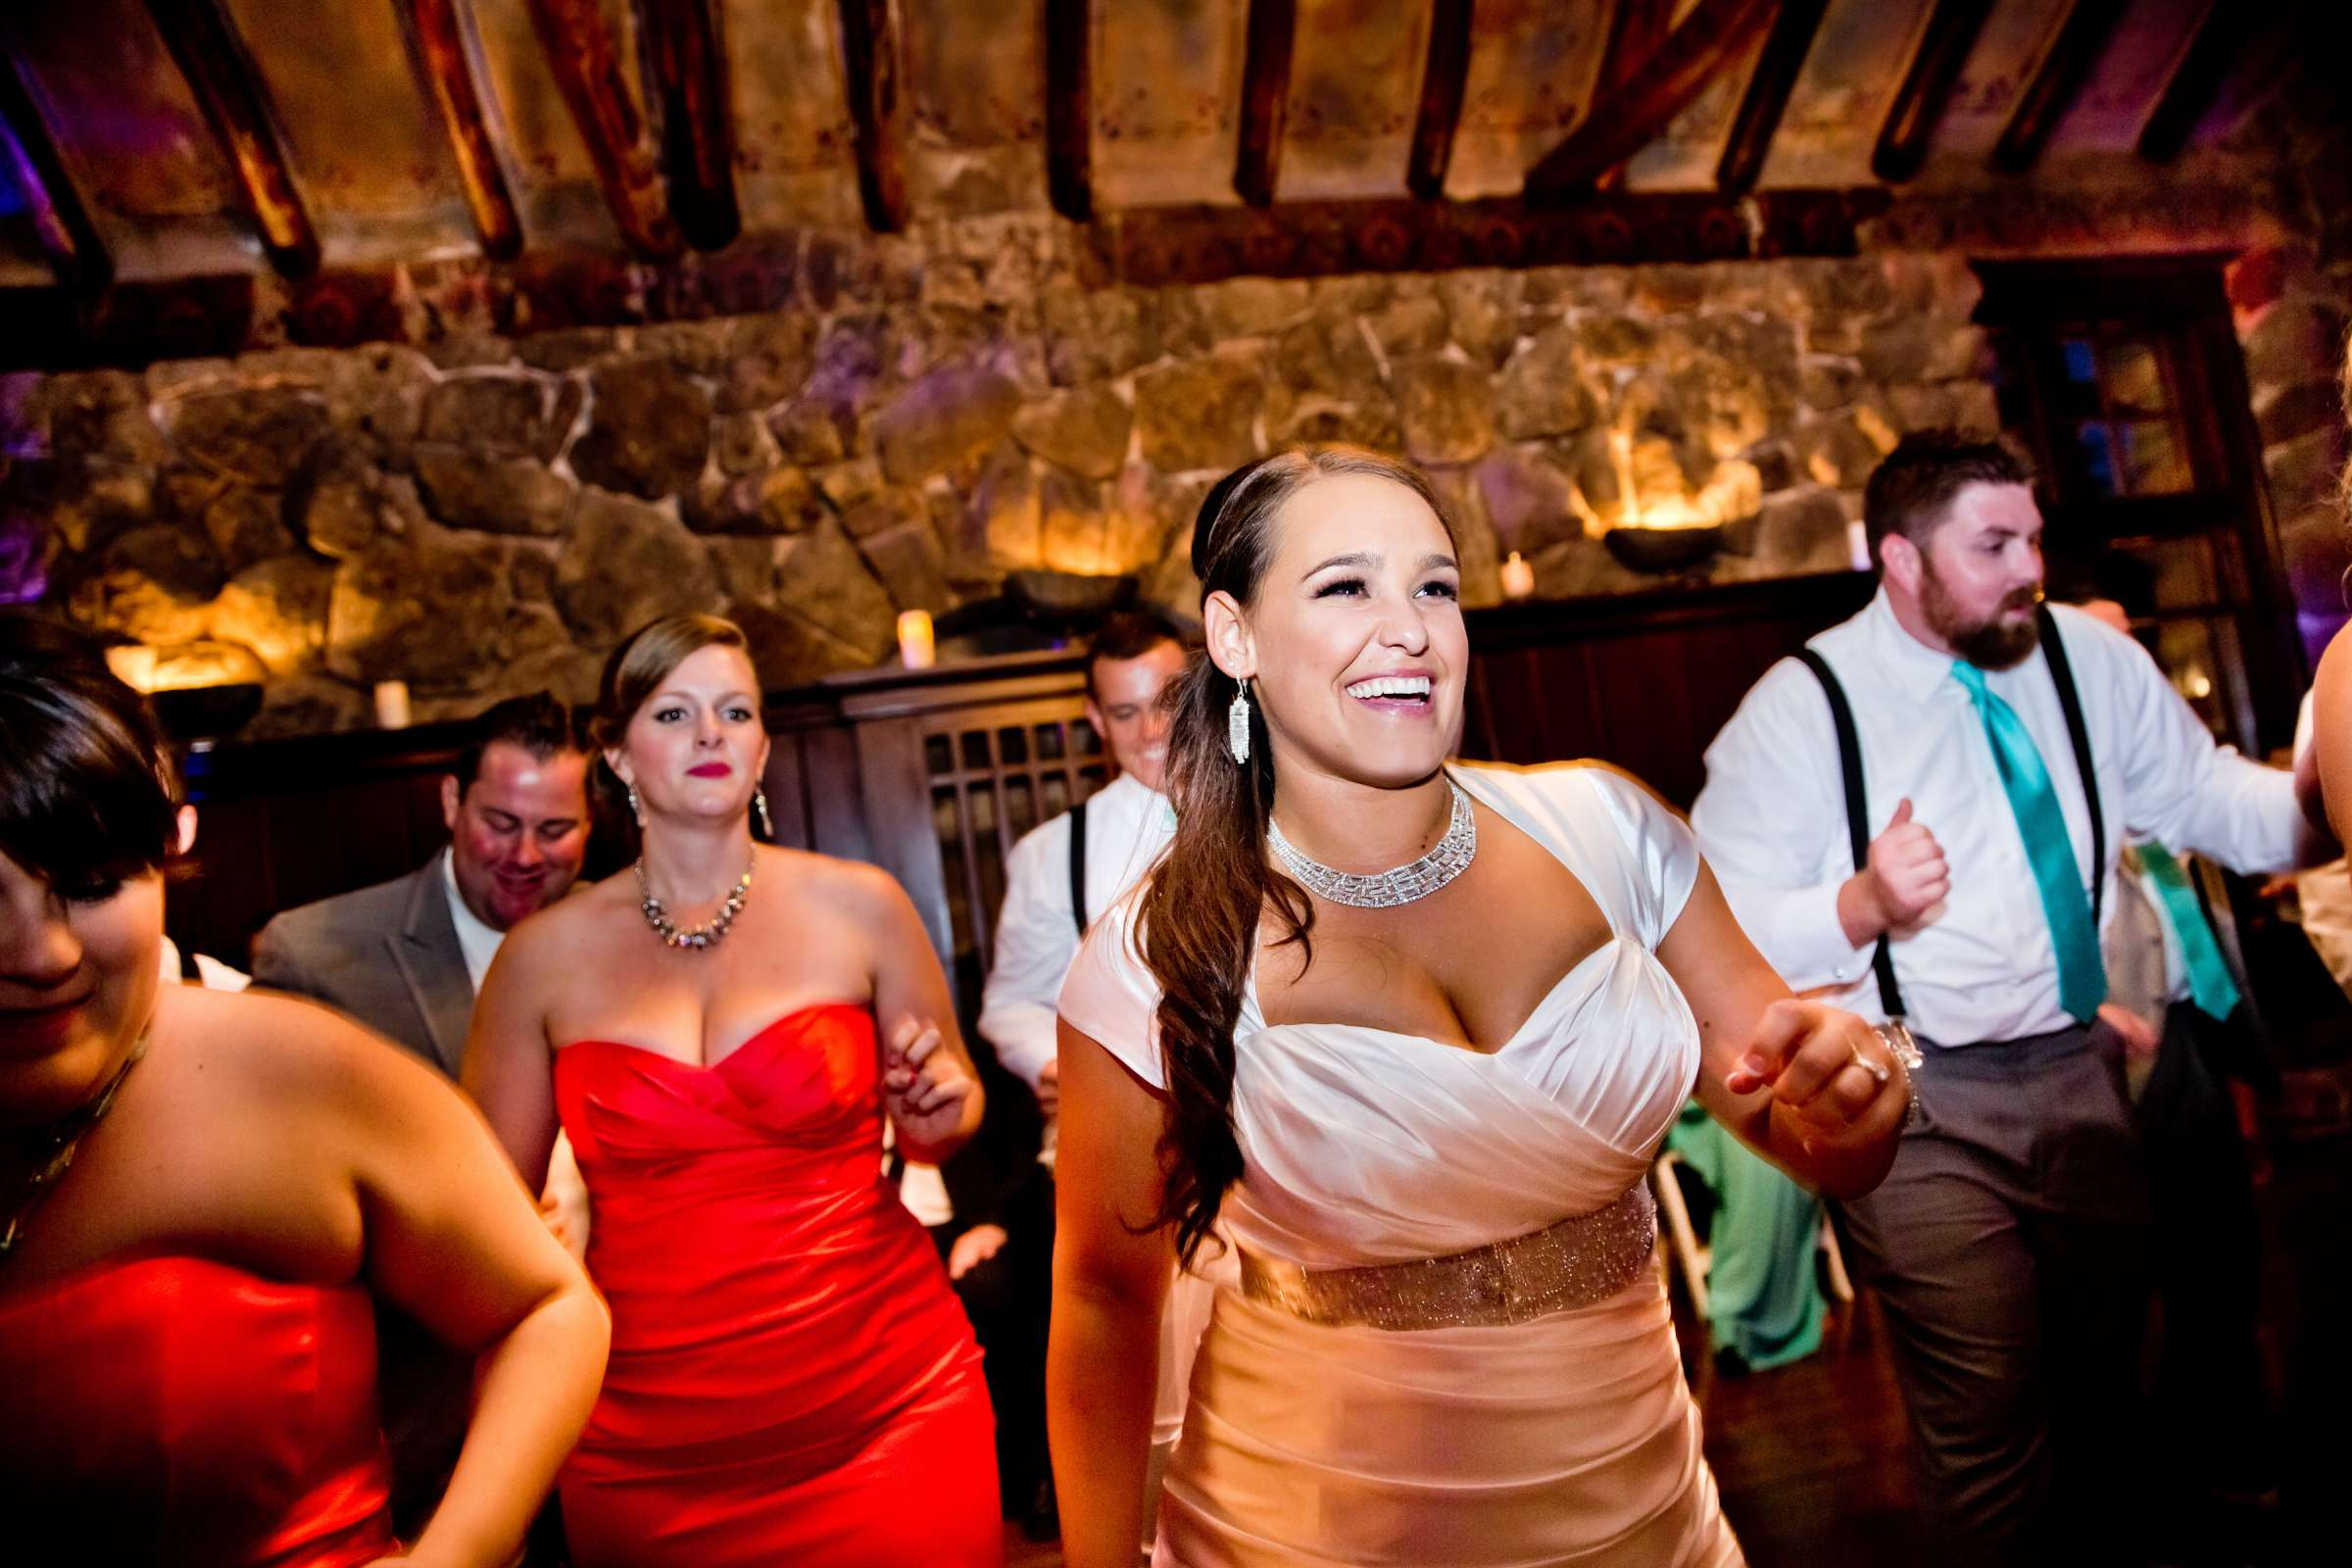 Mt Woodson Castle Wedding, Krista and Donald Wedding Photo #344740 by True Photography